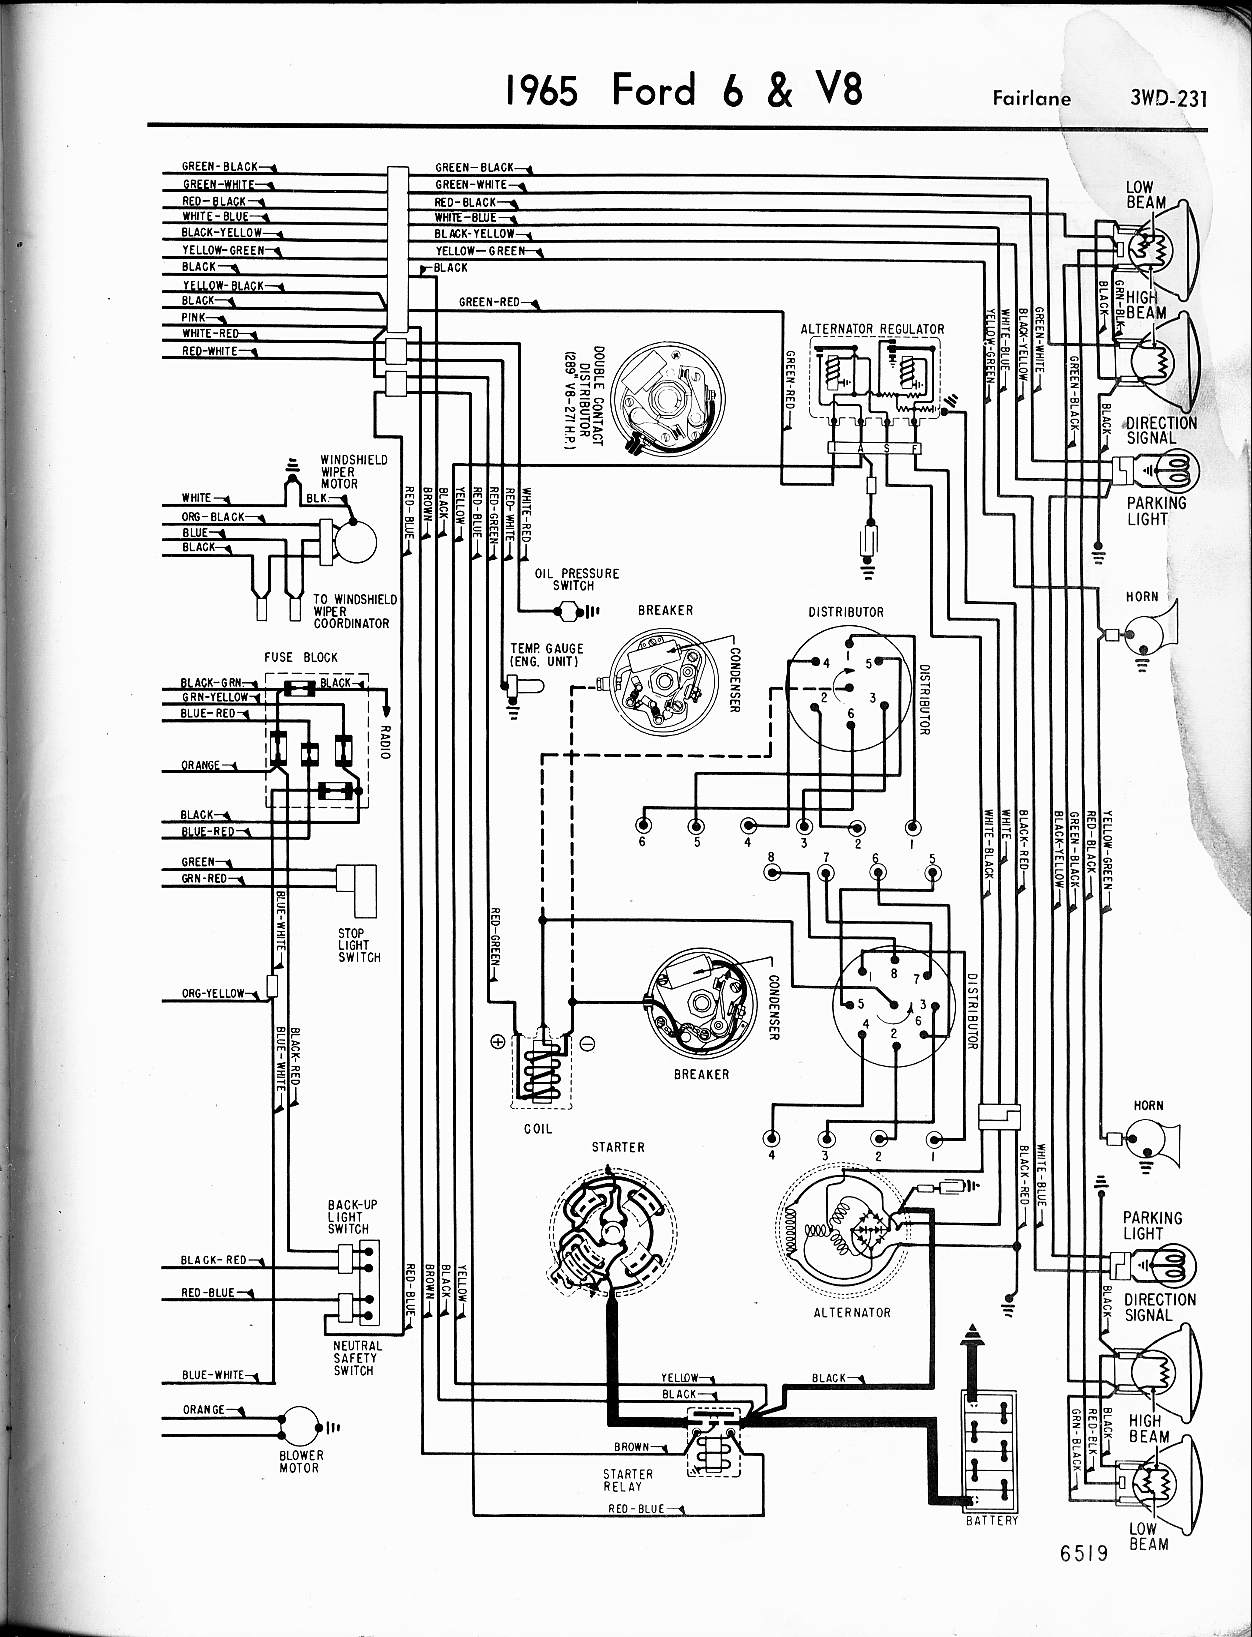 ford generator wiring diagram for 55 - wiring diagram tags loan-base -  loan-base.discoveriran.it  discoveriran.it